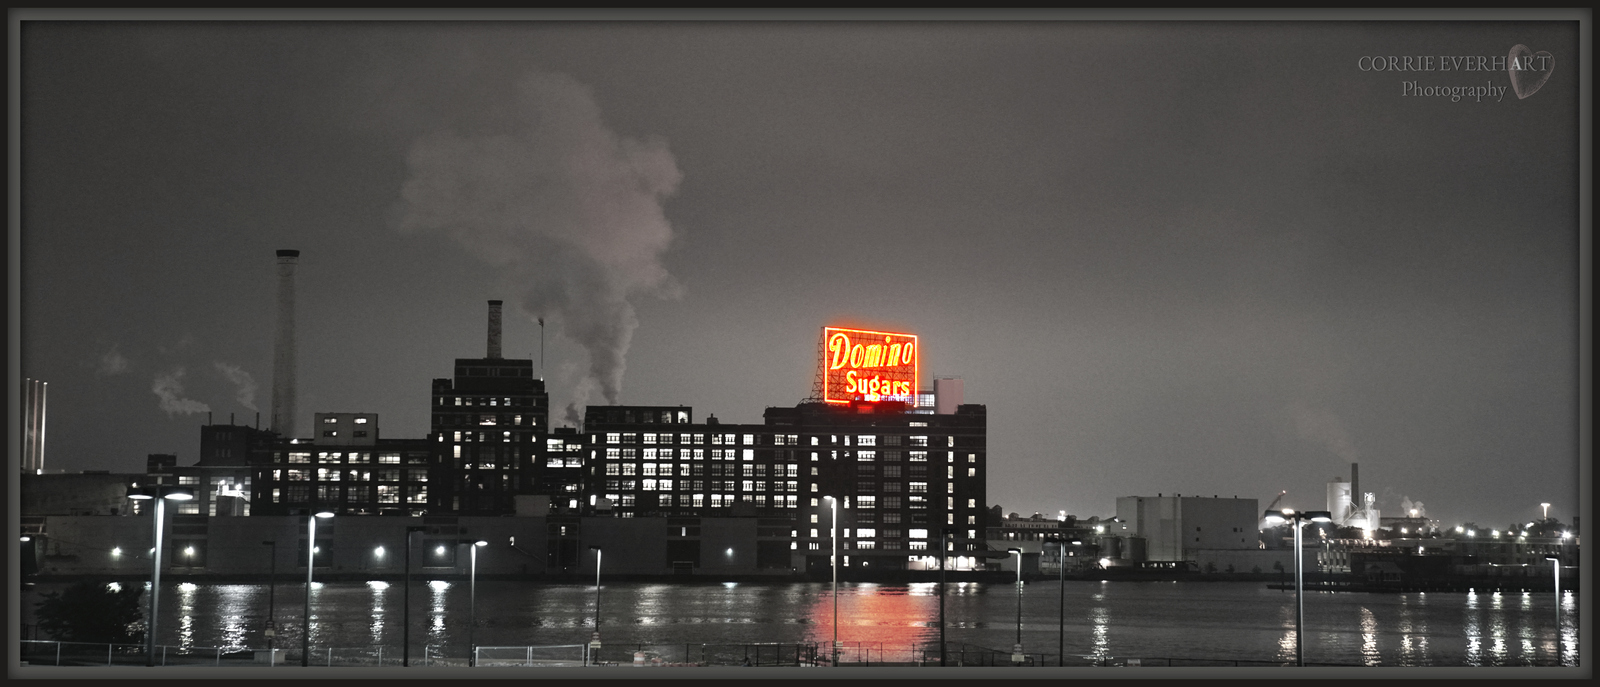 Primary image for How Sweet It Is - Domino Sugar B&W